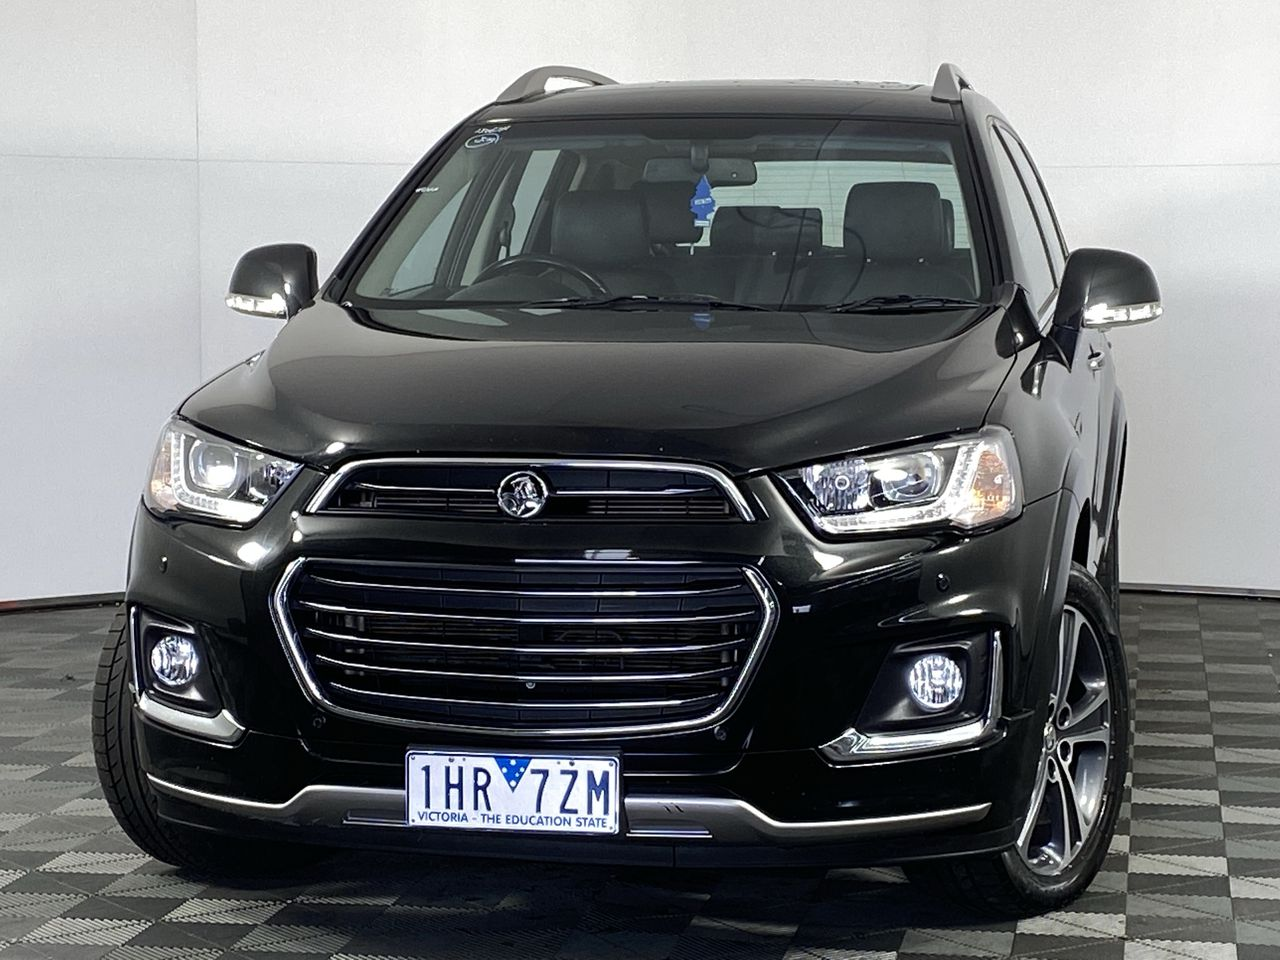 2016 Holden Captiva LTZ Automatic 7 Seats Wagon